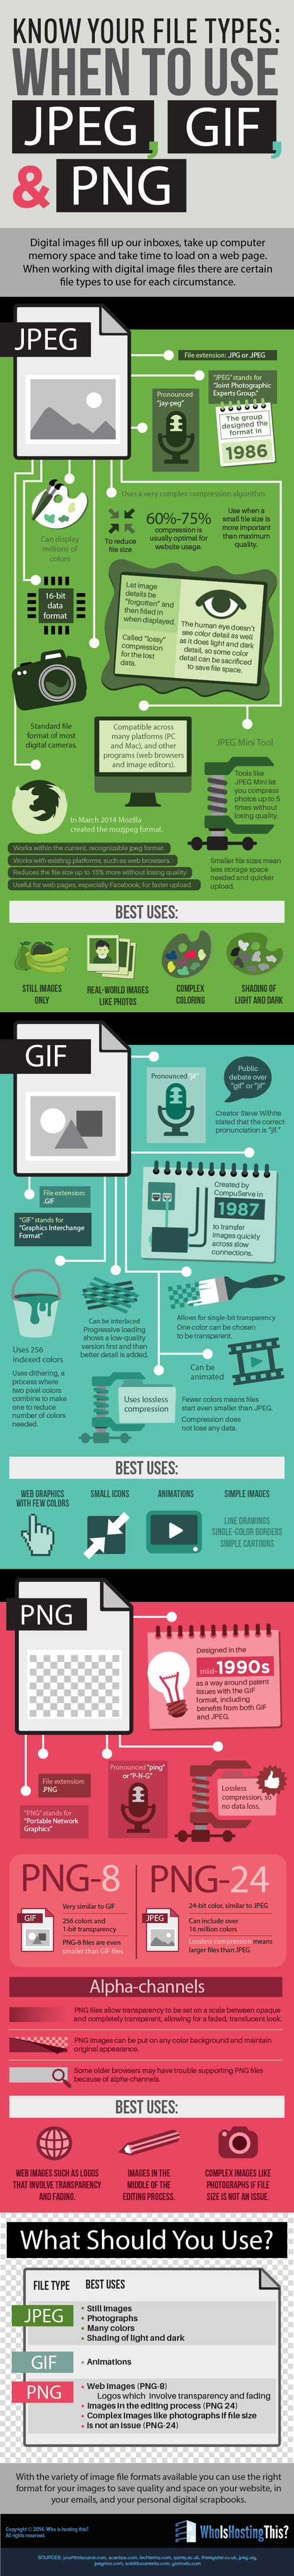 When to Use JPEG, GIF & PNG, Handy #Infographic for Art and Design on the Web | MarketingHits | Scoop.it